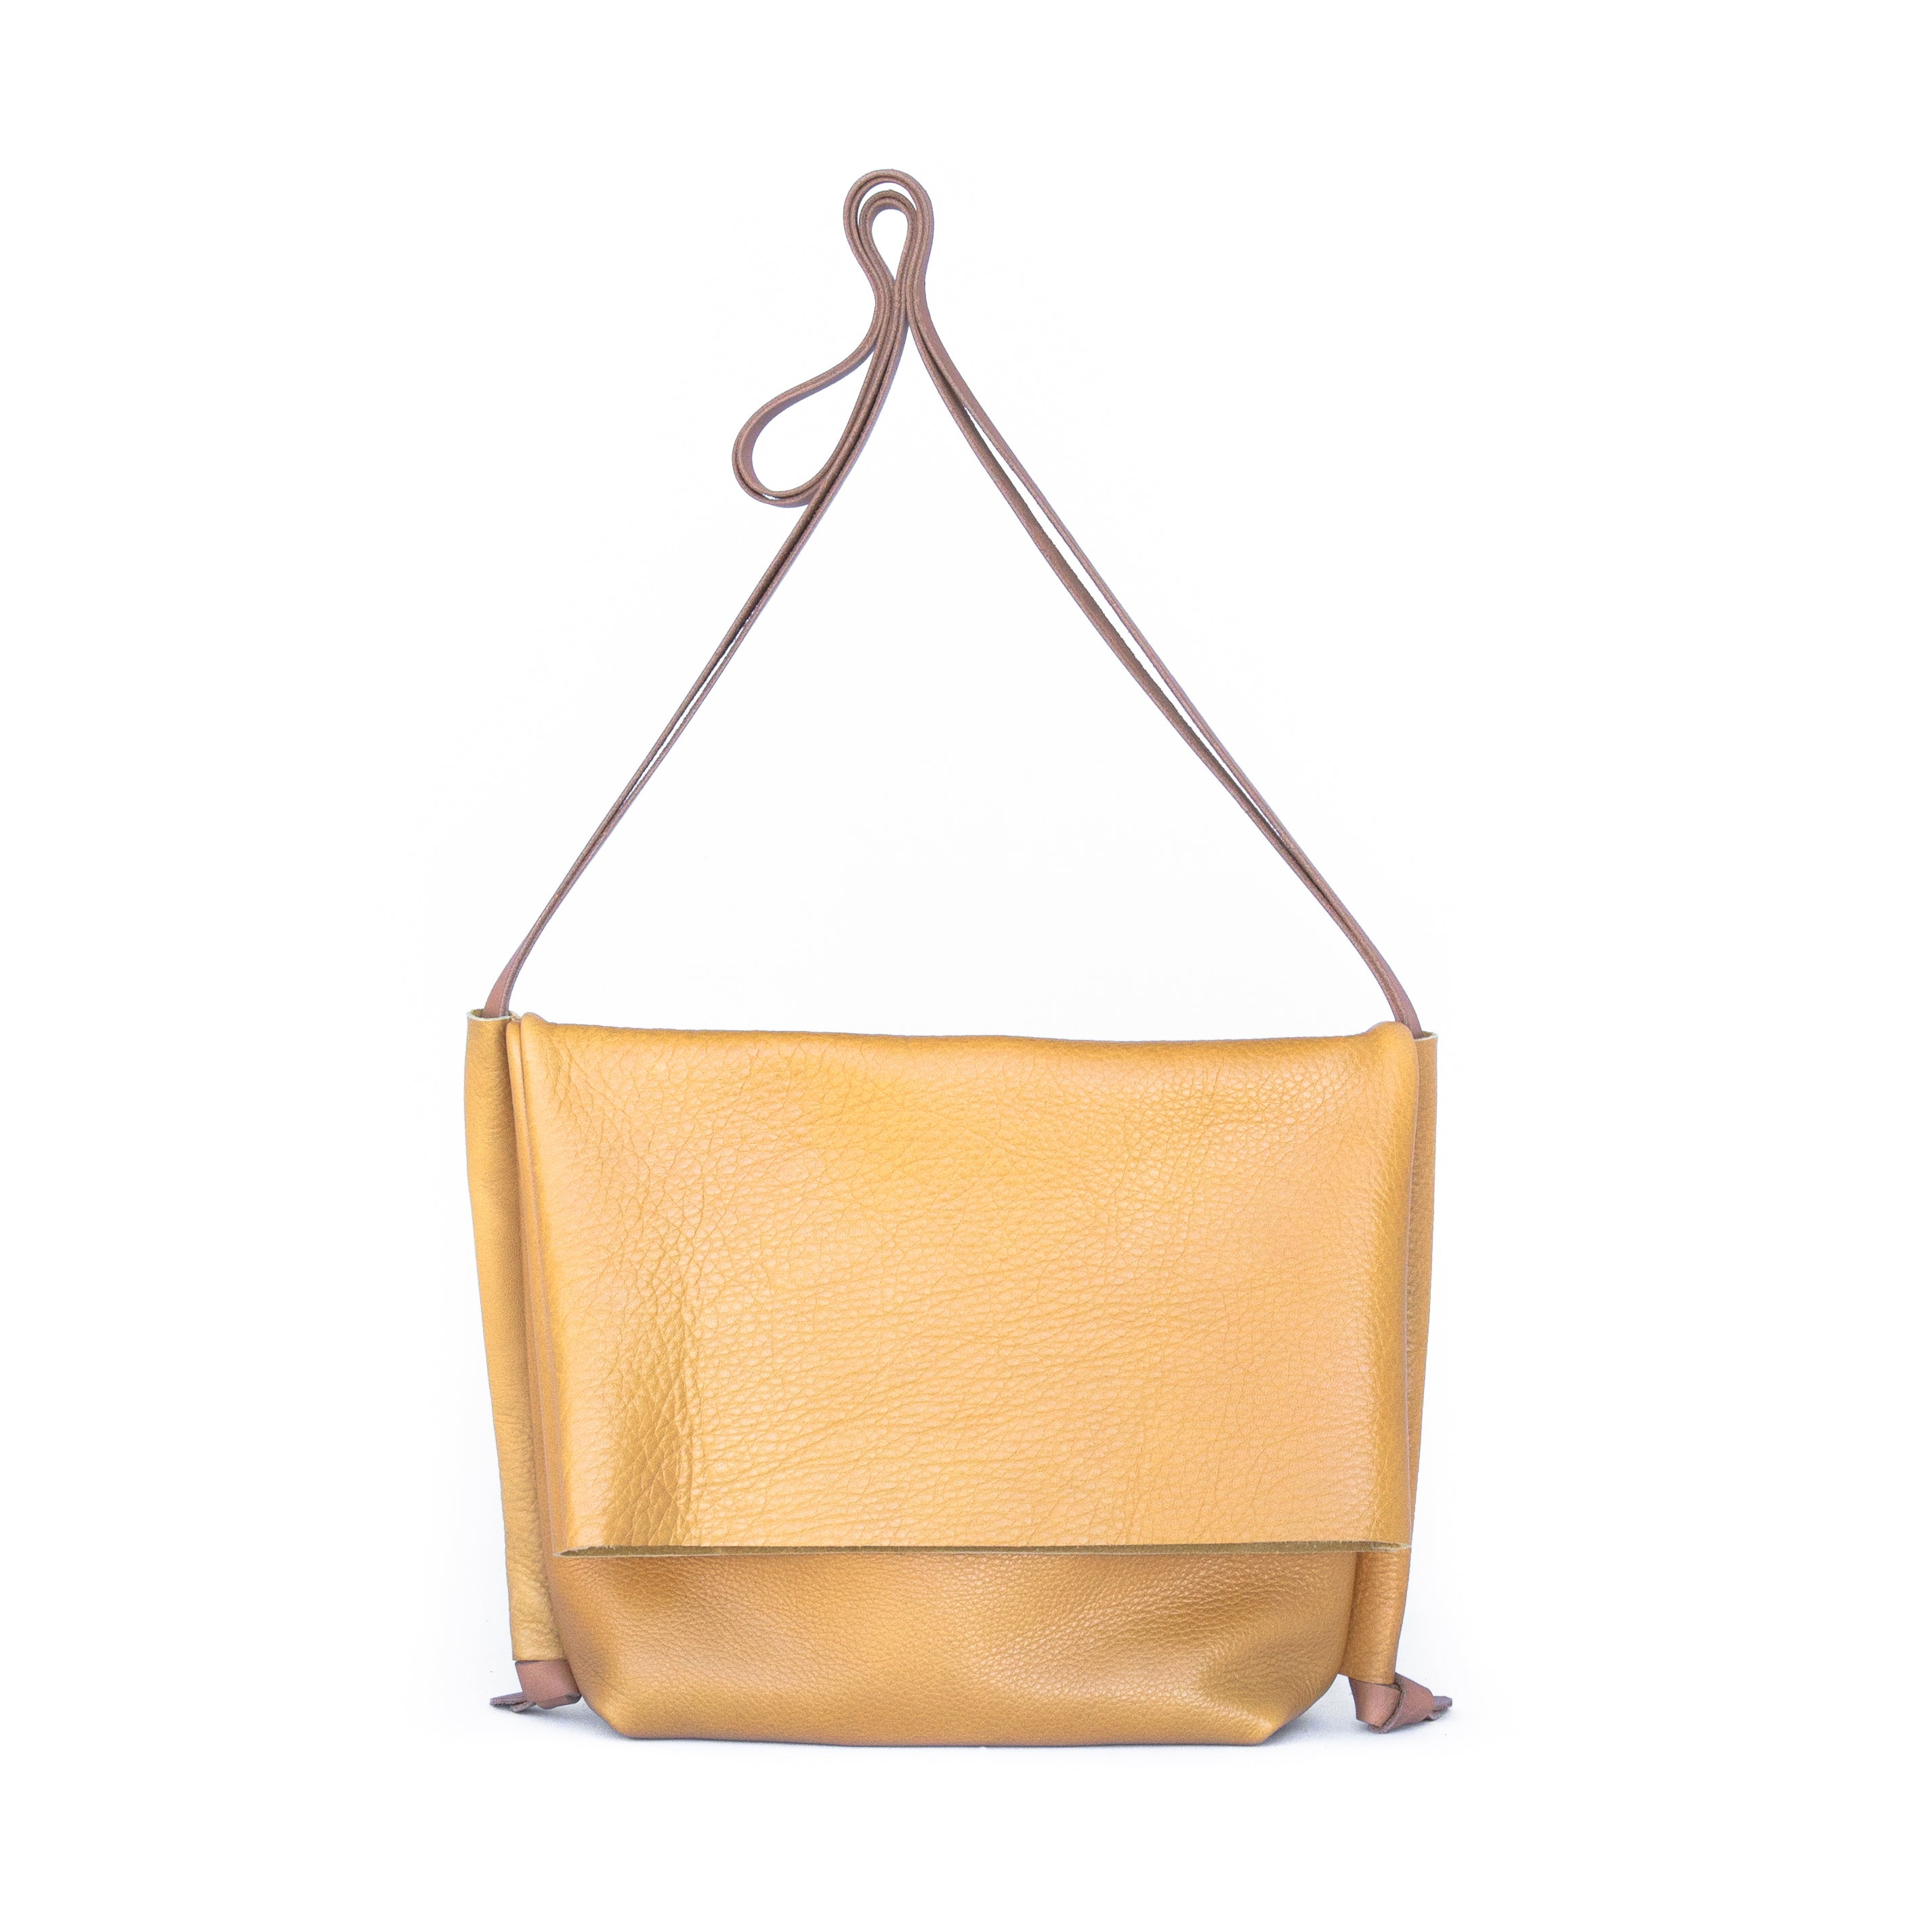 Flip Bag in Mustard Leather - handcrafted by Market Canvas Leather in Tofino, BC, Canada